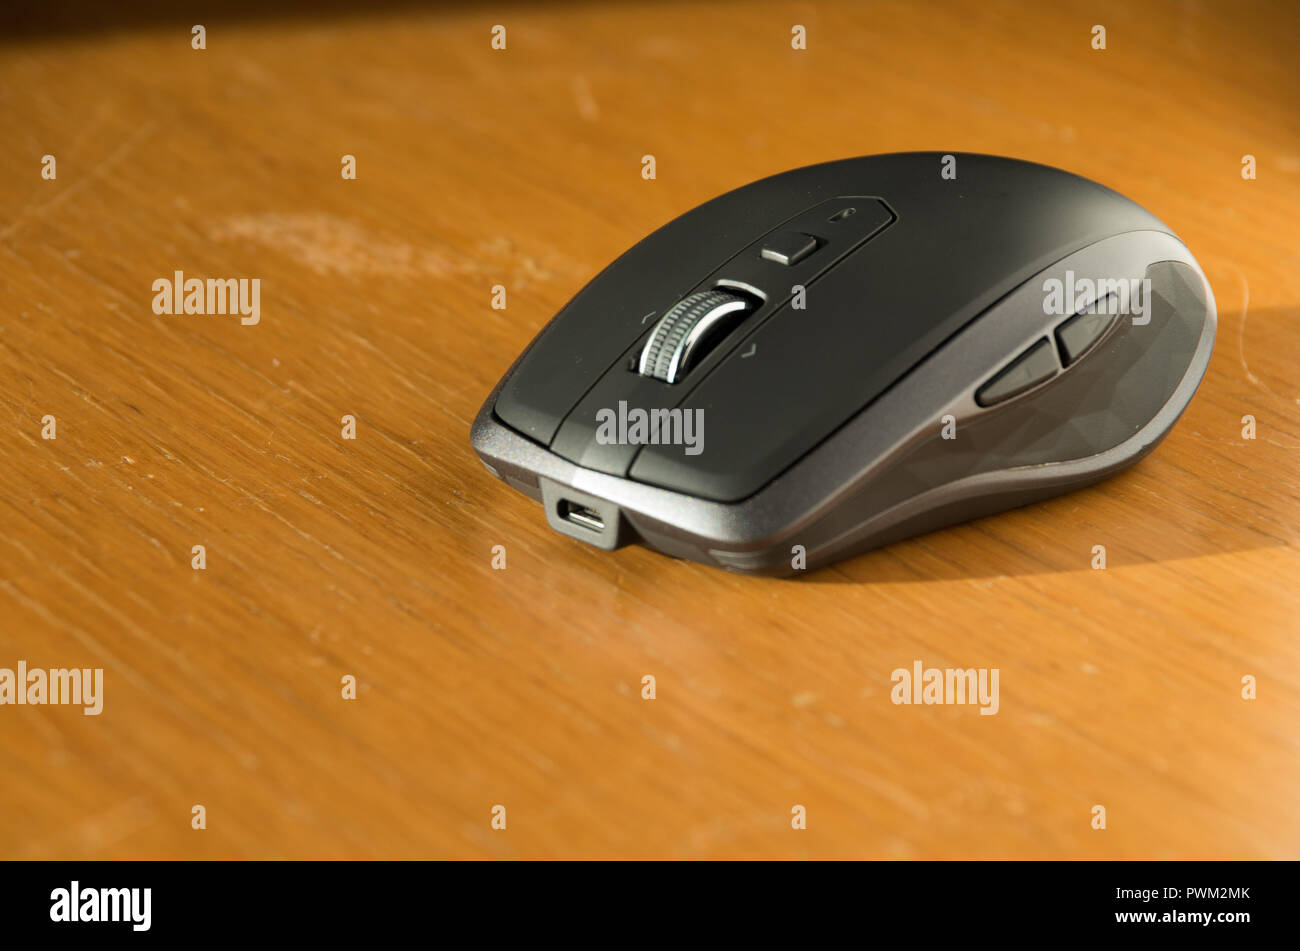 Wireless Mouse with omnidirectional scroll wheel and side buttons